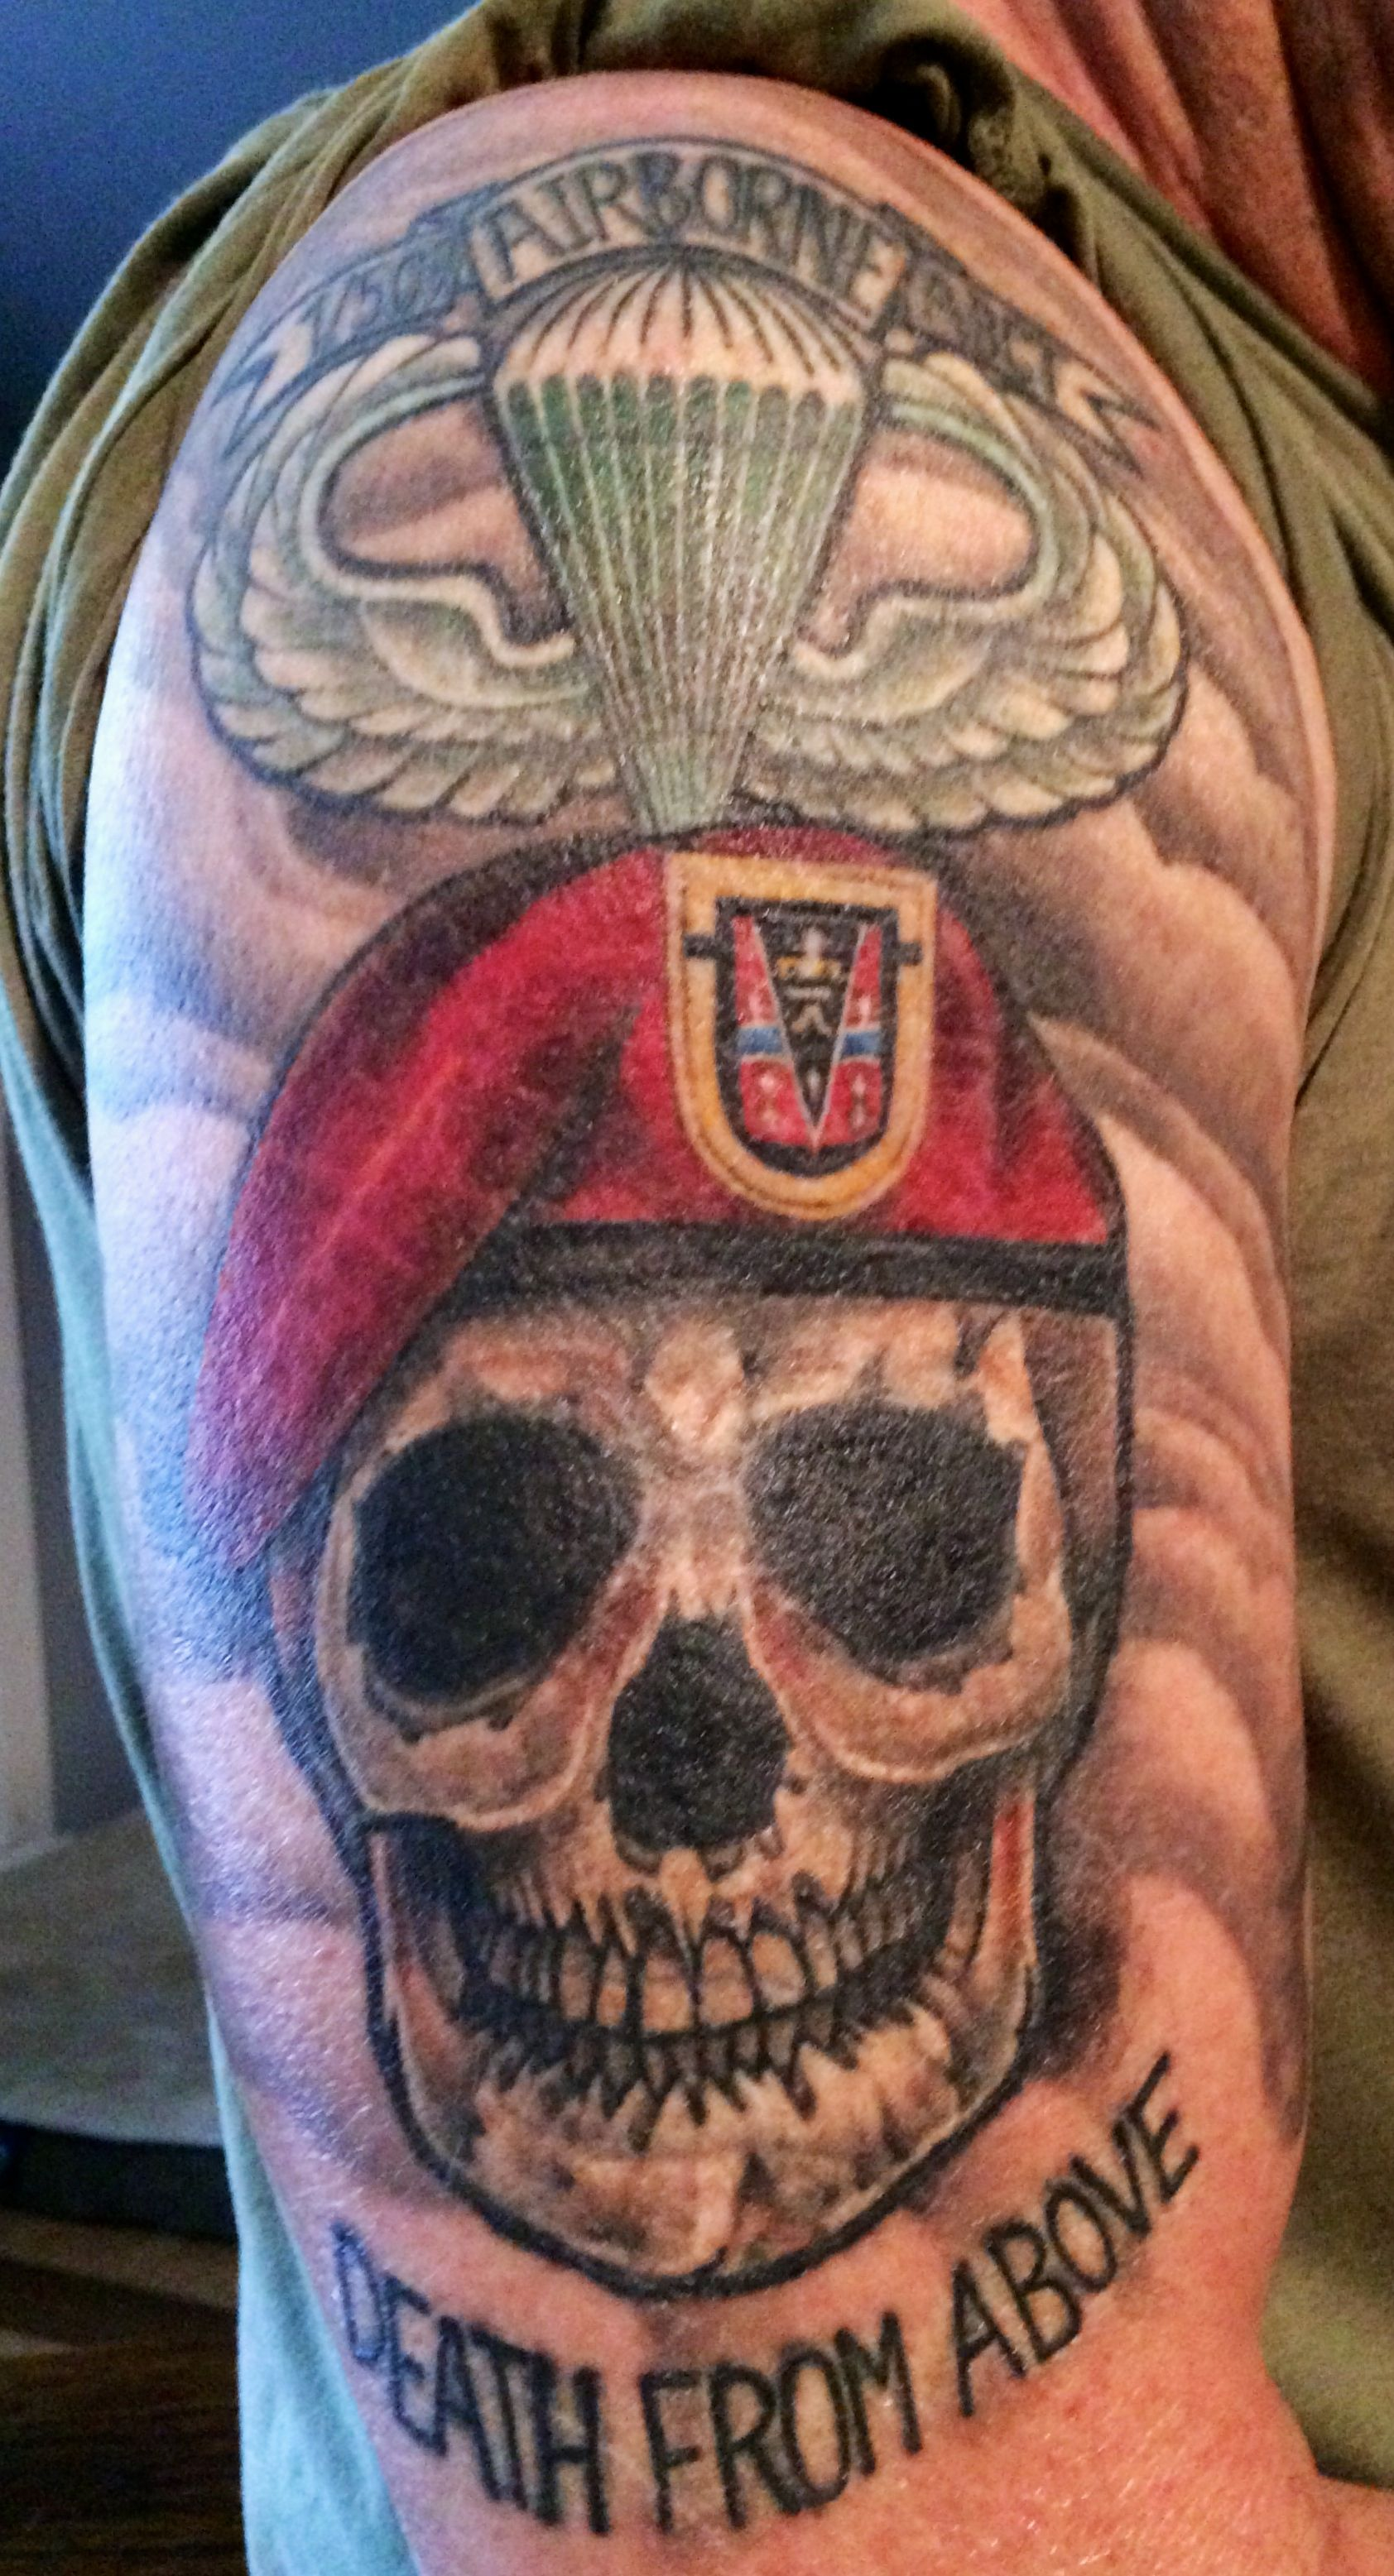 my army tattoo stuff that i like pinterest army tattoos army and tattoo. Black Bedroom Furniture Sets. Home Design Ideas